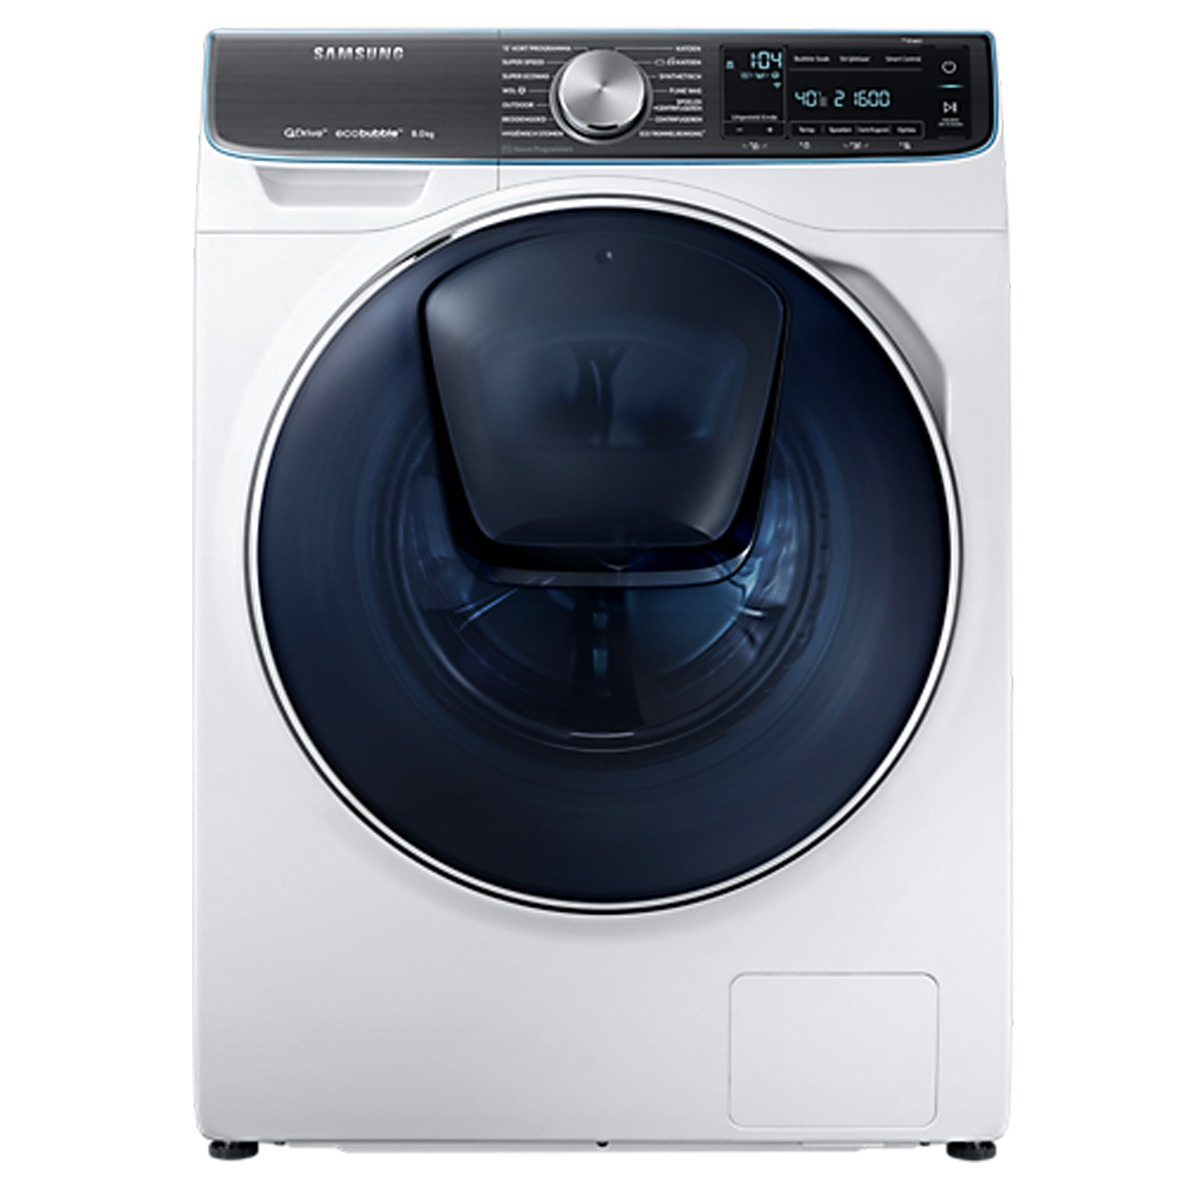 Samsung WW80M760NOM QuickDrive Wasmachine Wit